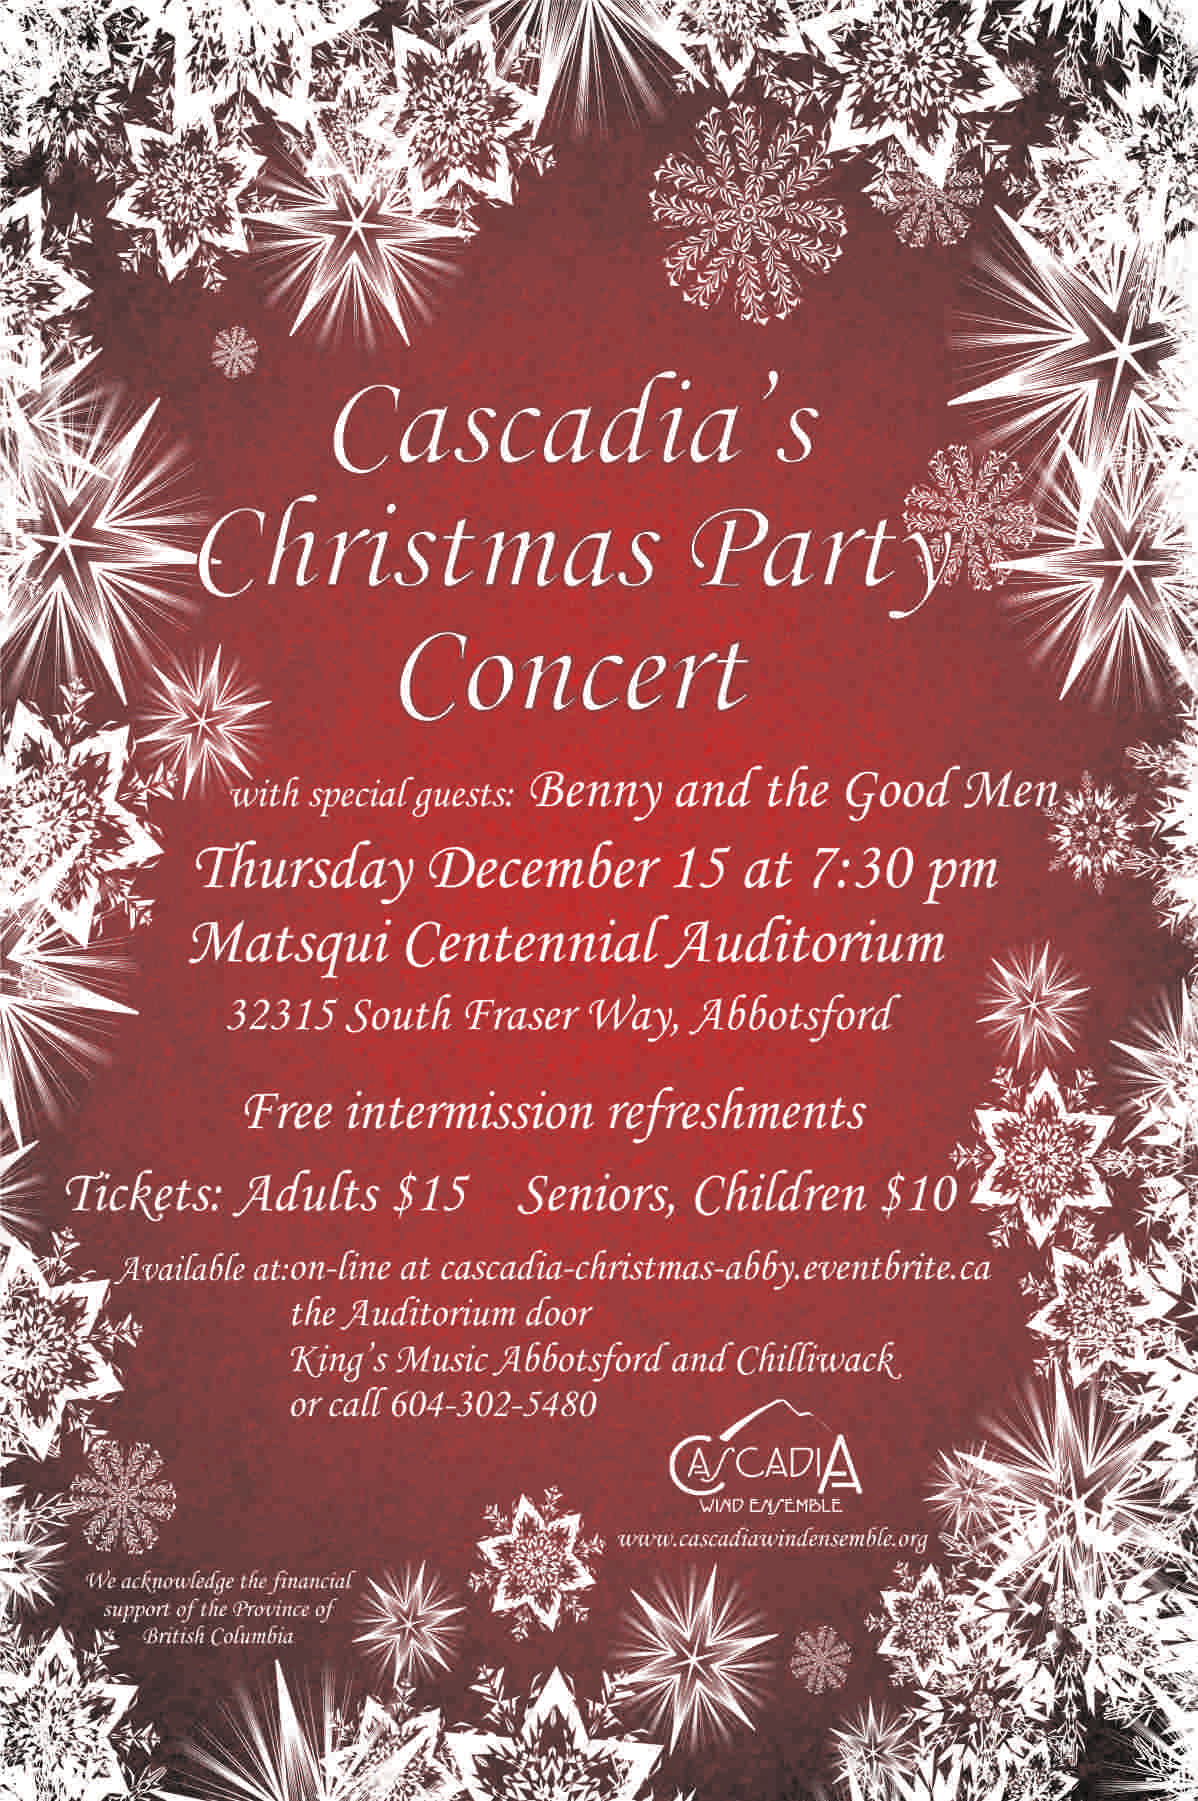 Cascadia's Abbotsford Christmas Concert